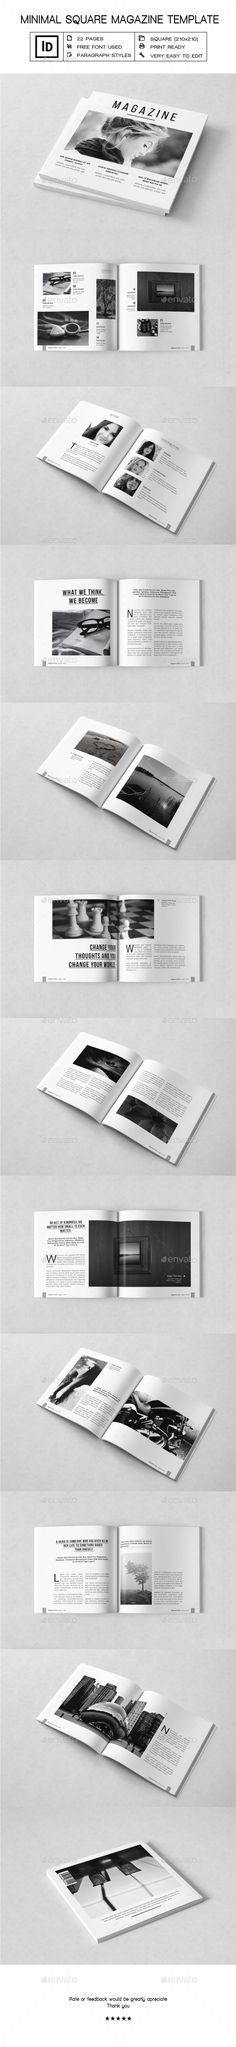 Minimal Square Magazine Template 	InDesign INDD. Download here: https://graphicriver.net/item/minimal-square-magazine-template/17552736?ref=ksioks